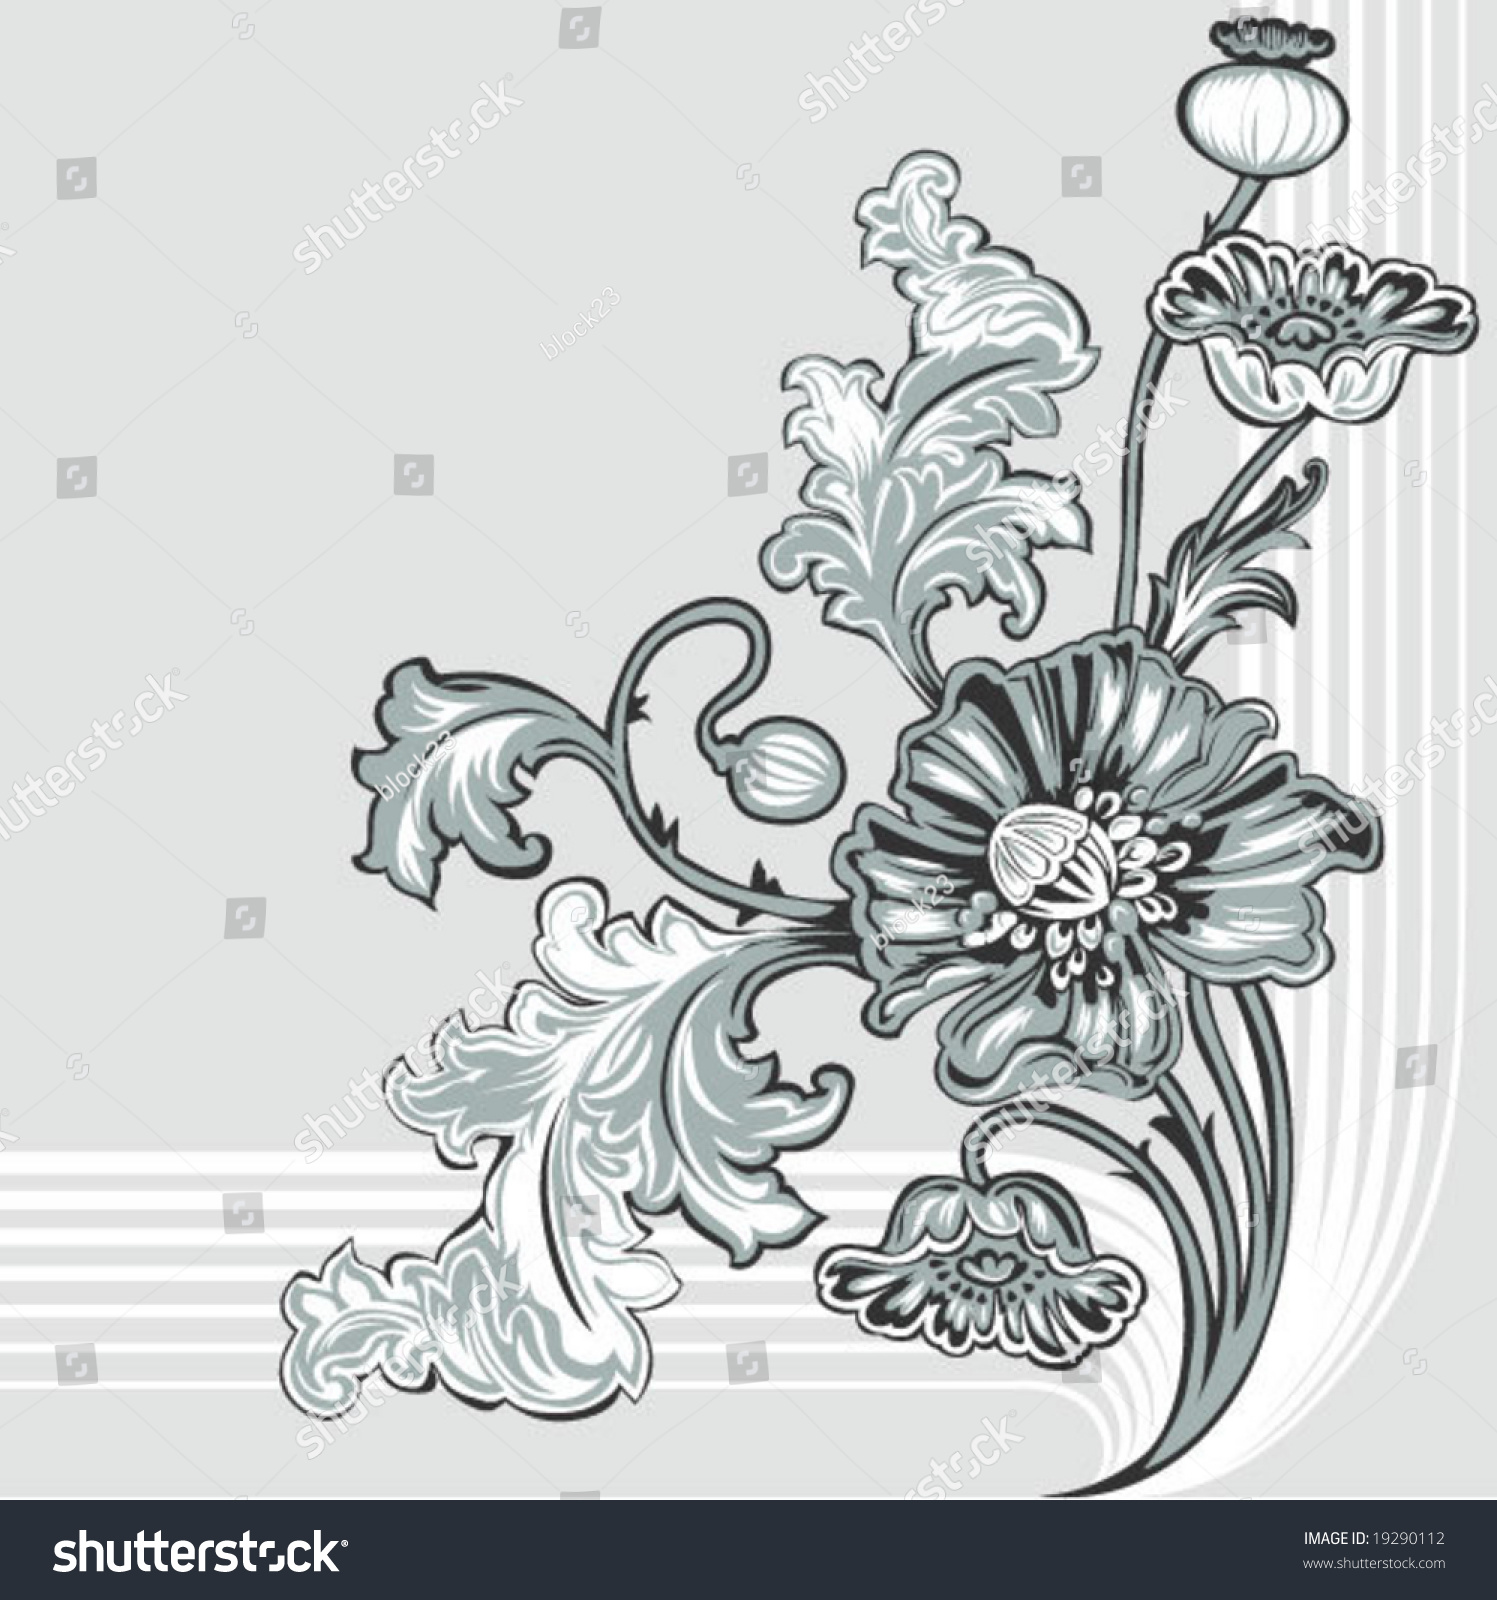 nouveau poppy decor element stock vector 19290112